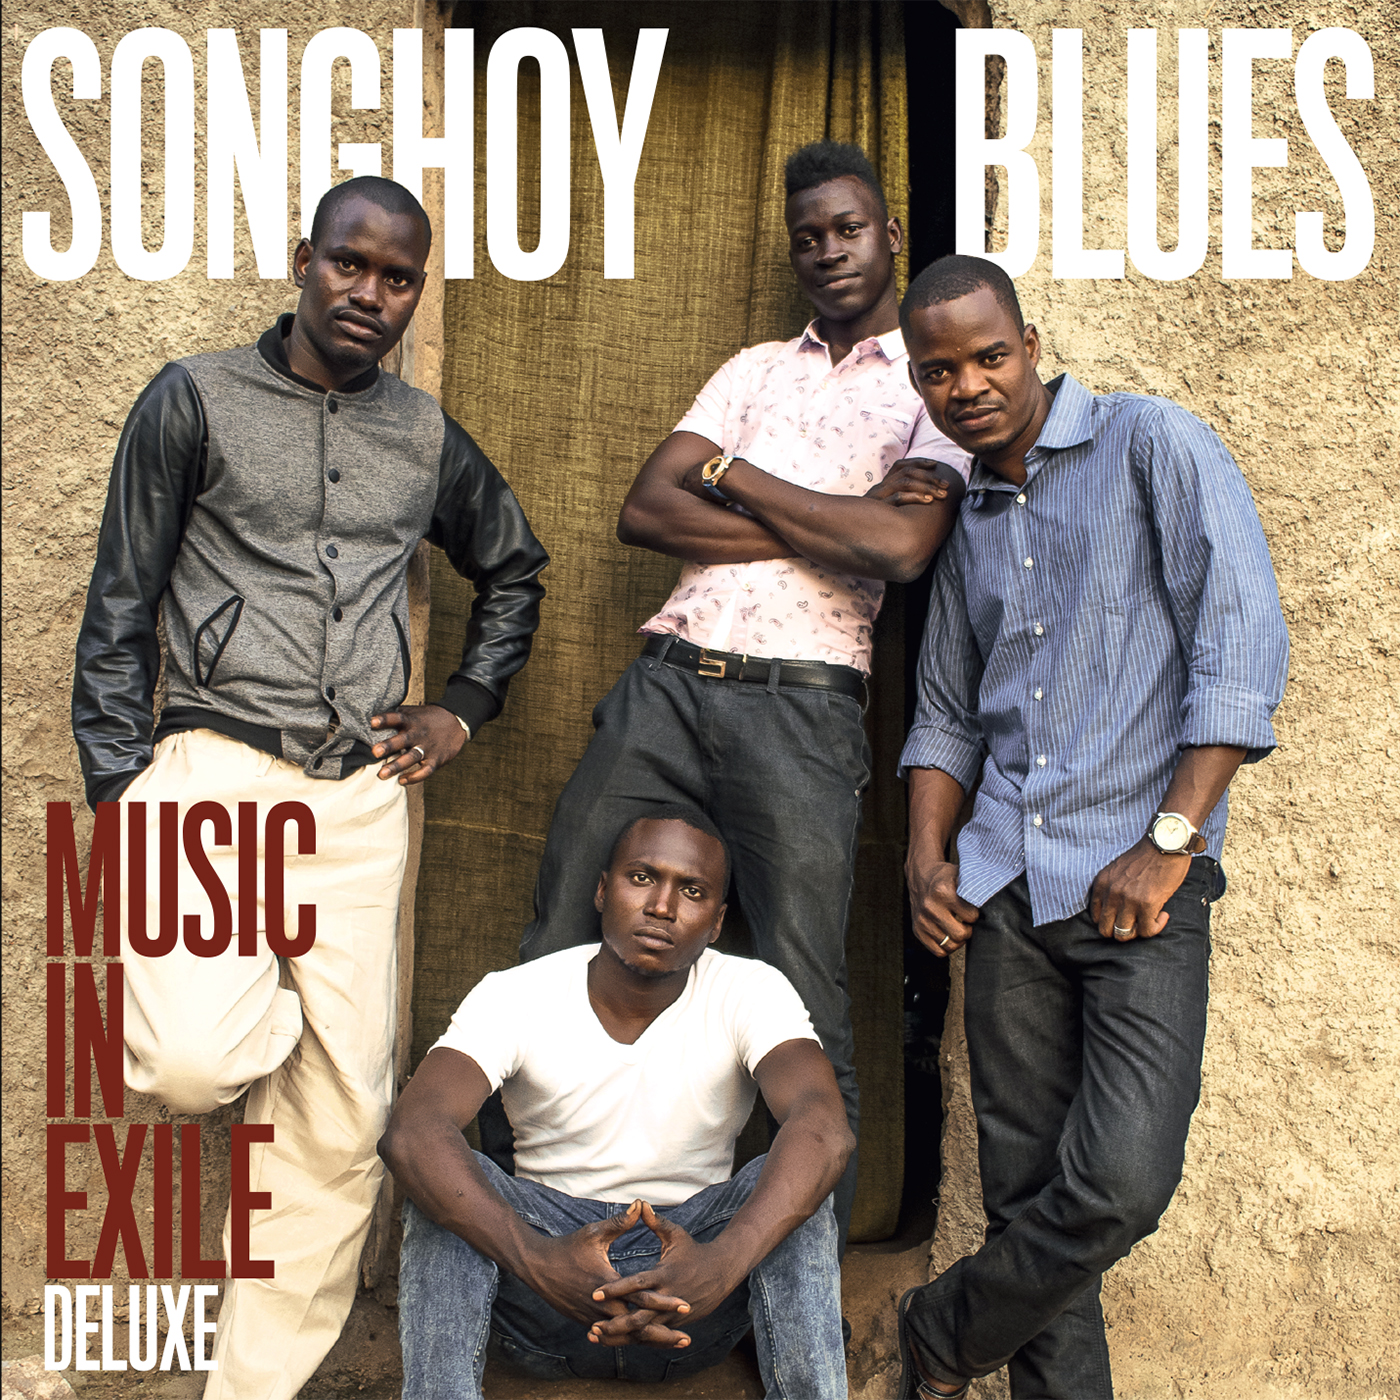 Music in Exile (Deluxe Edition) - CD - Songhoy Blues